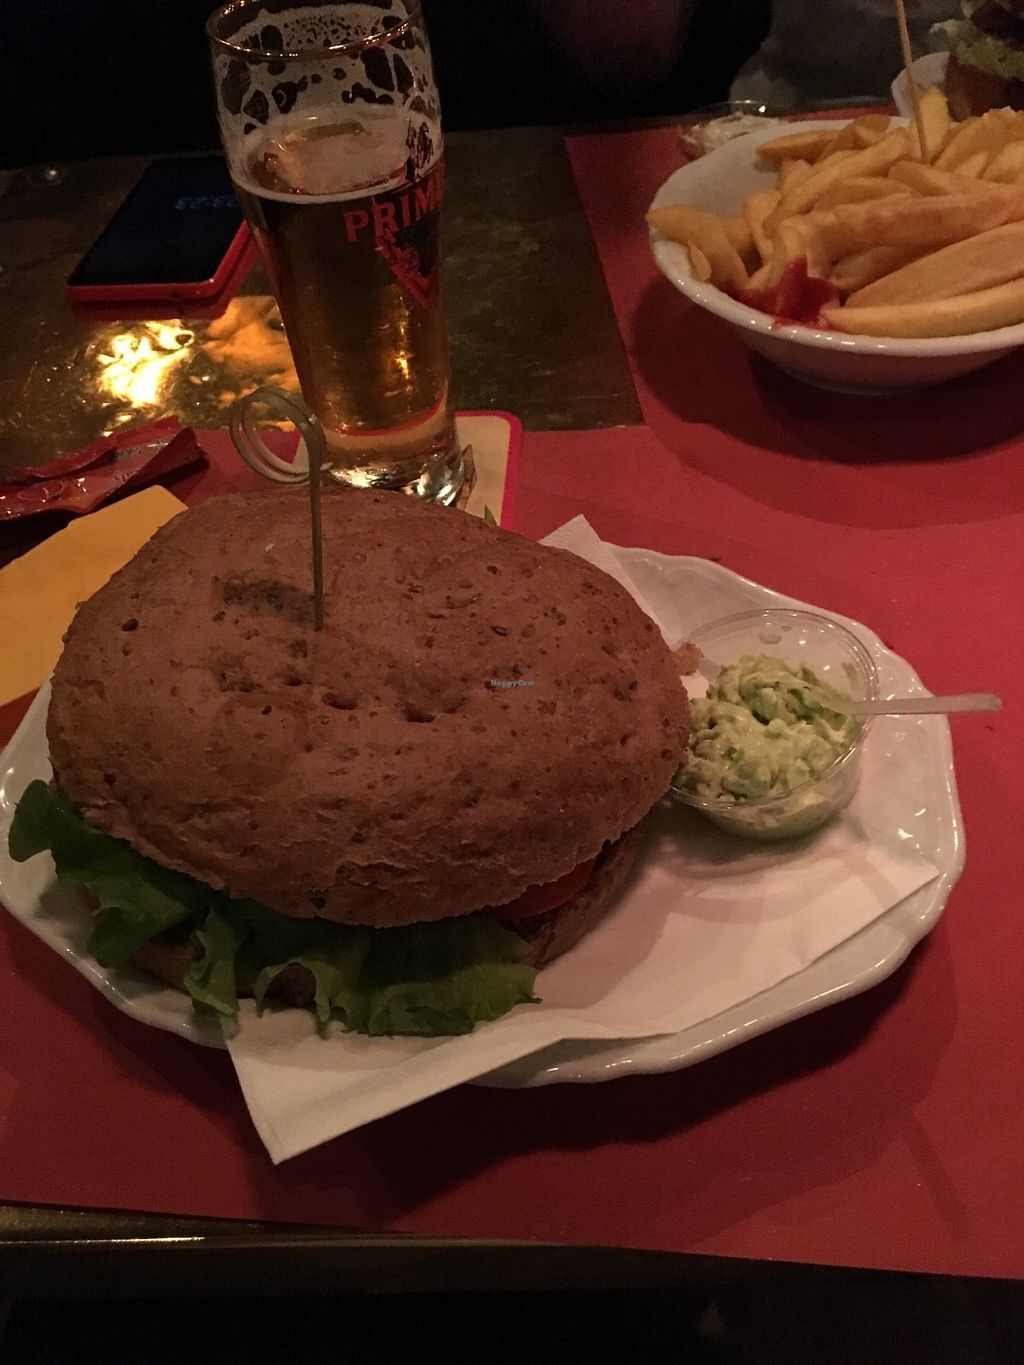 """Photo of Taverna di Mr O  by <a href=""""/members/profile/_zelisa"""">_zelisa</a> <br/>Vegan burger  <br/> October 28, 2017  - <a href='/contact/abuse/image/103119/319413'>Report</a>"""